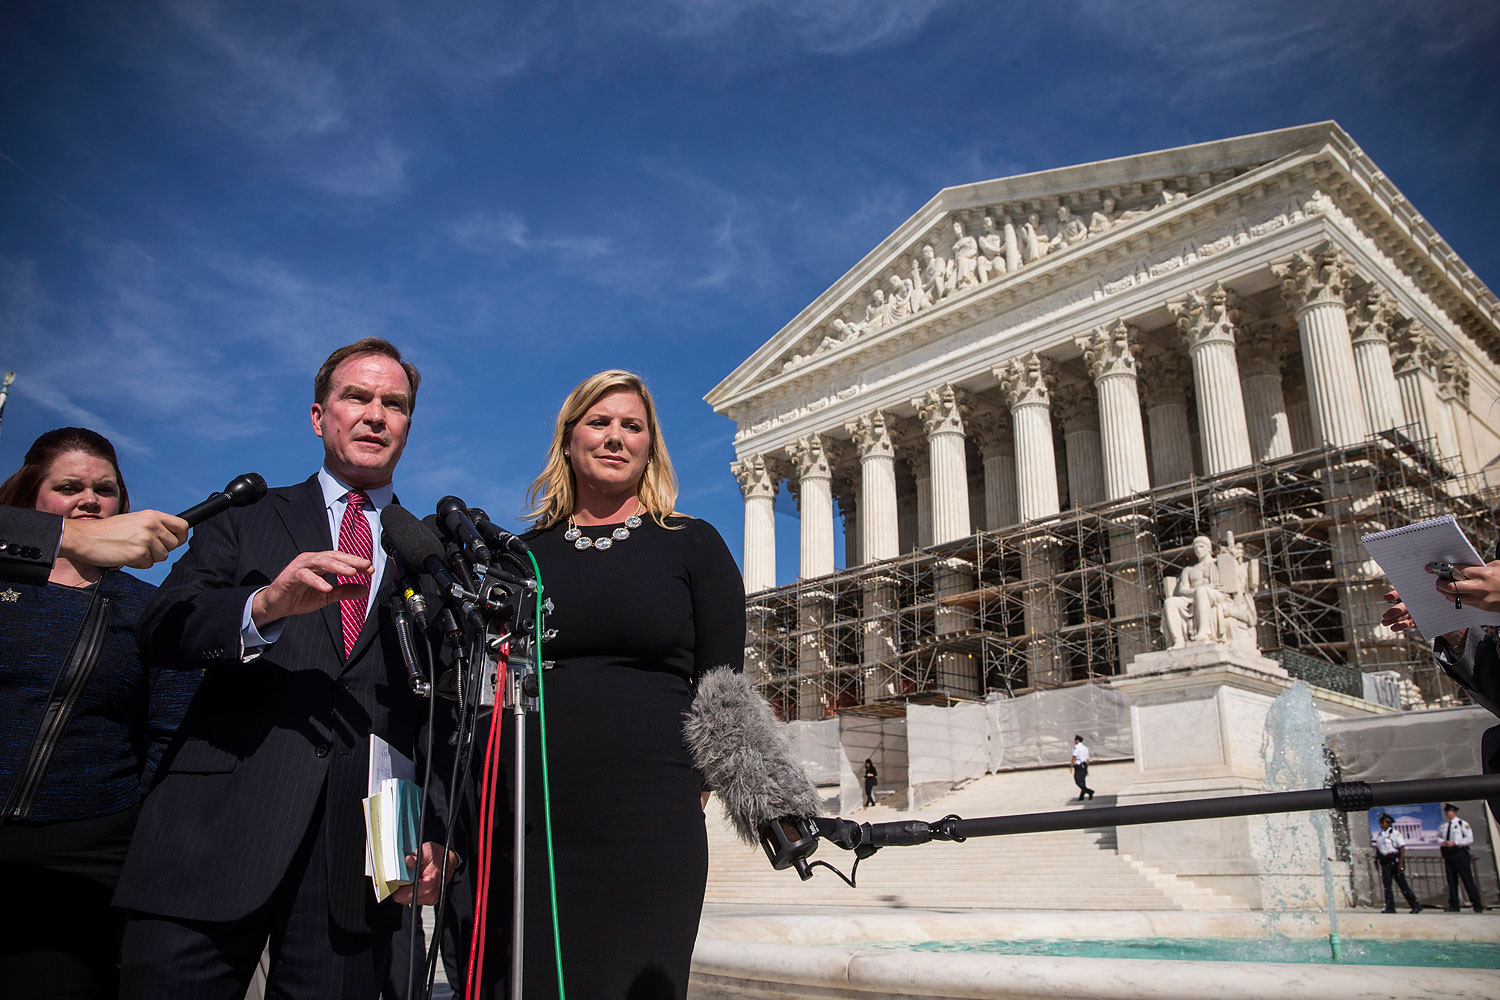 Jennifer Gratz, right, CEO of XIV Foundation and Michigan Attorney General Bill Schuette speak during a press conference outside the Supreme Court after going before the Supreme Court in  Schuette v. Coalition to Defend Affirmative Action  on Oct. 15, 2013 in Washington, DC.